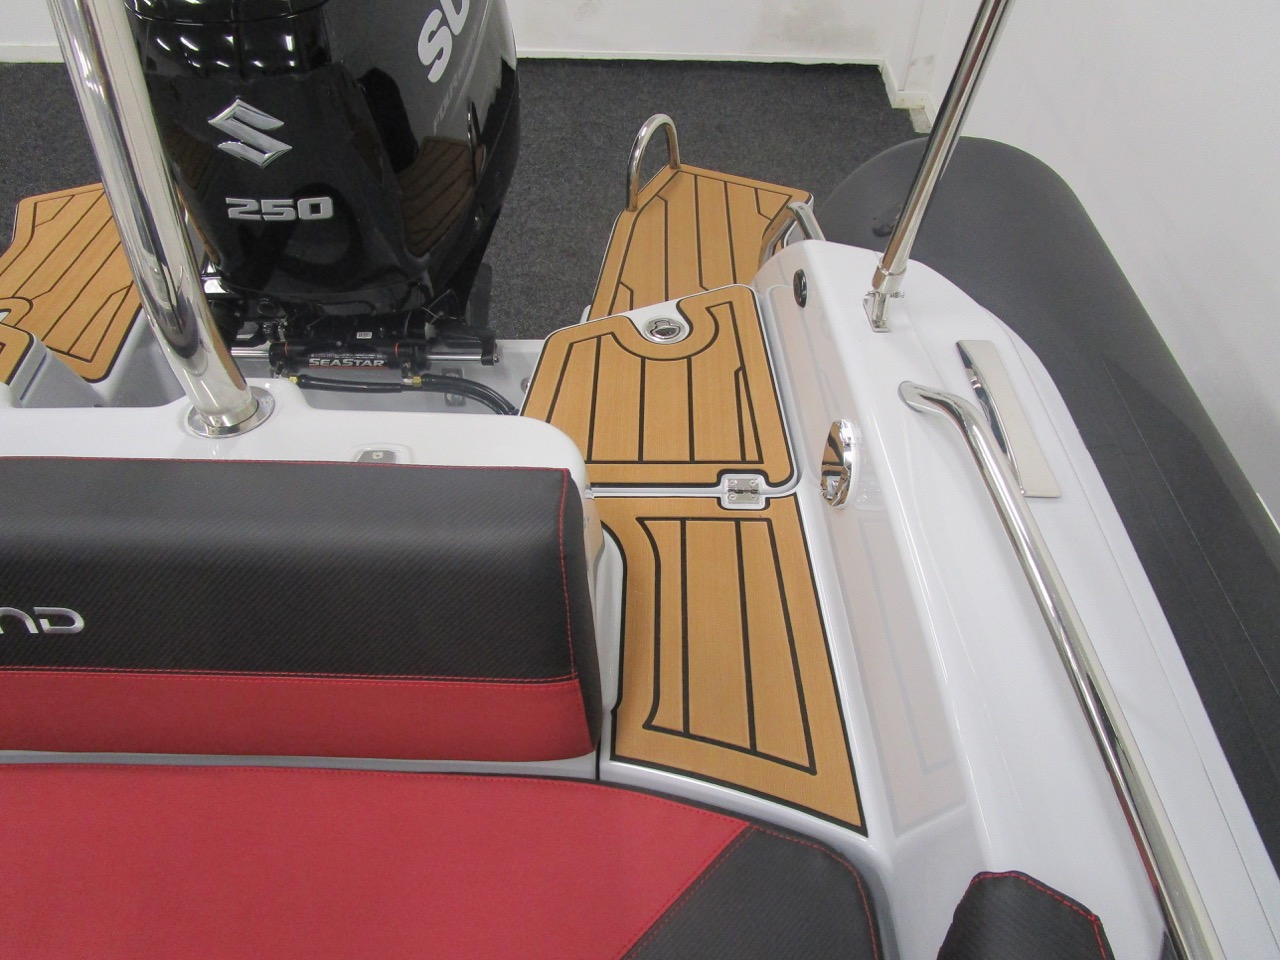 GRAND G750 RIB clear, stepped access to boarding ladder